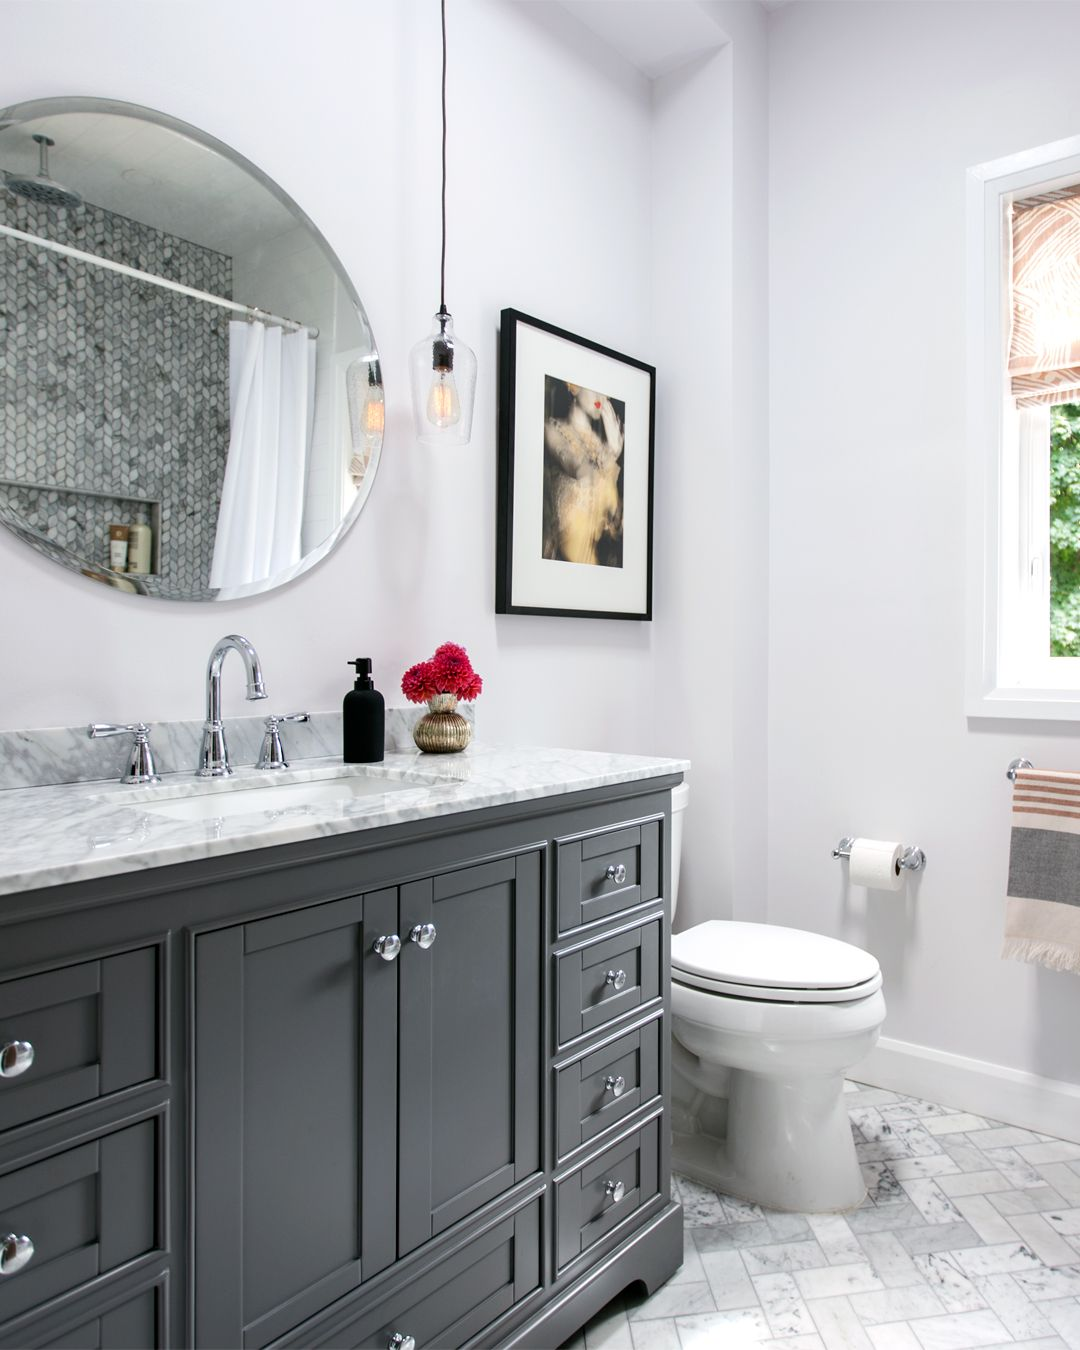 Small Bathroom Design: Get Bathroom Renovation Ide